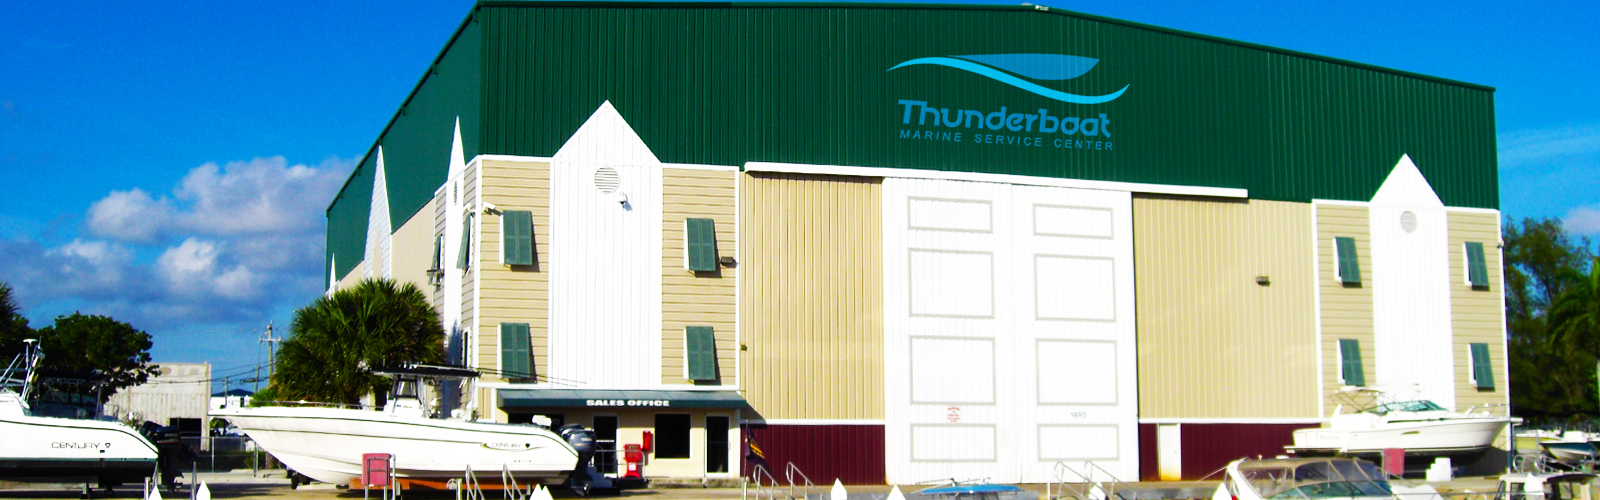 Thunderboat Marine Service Center